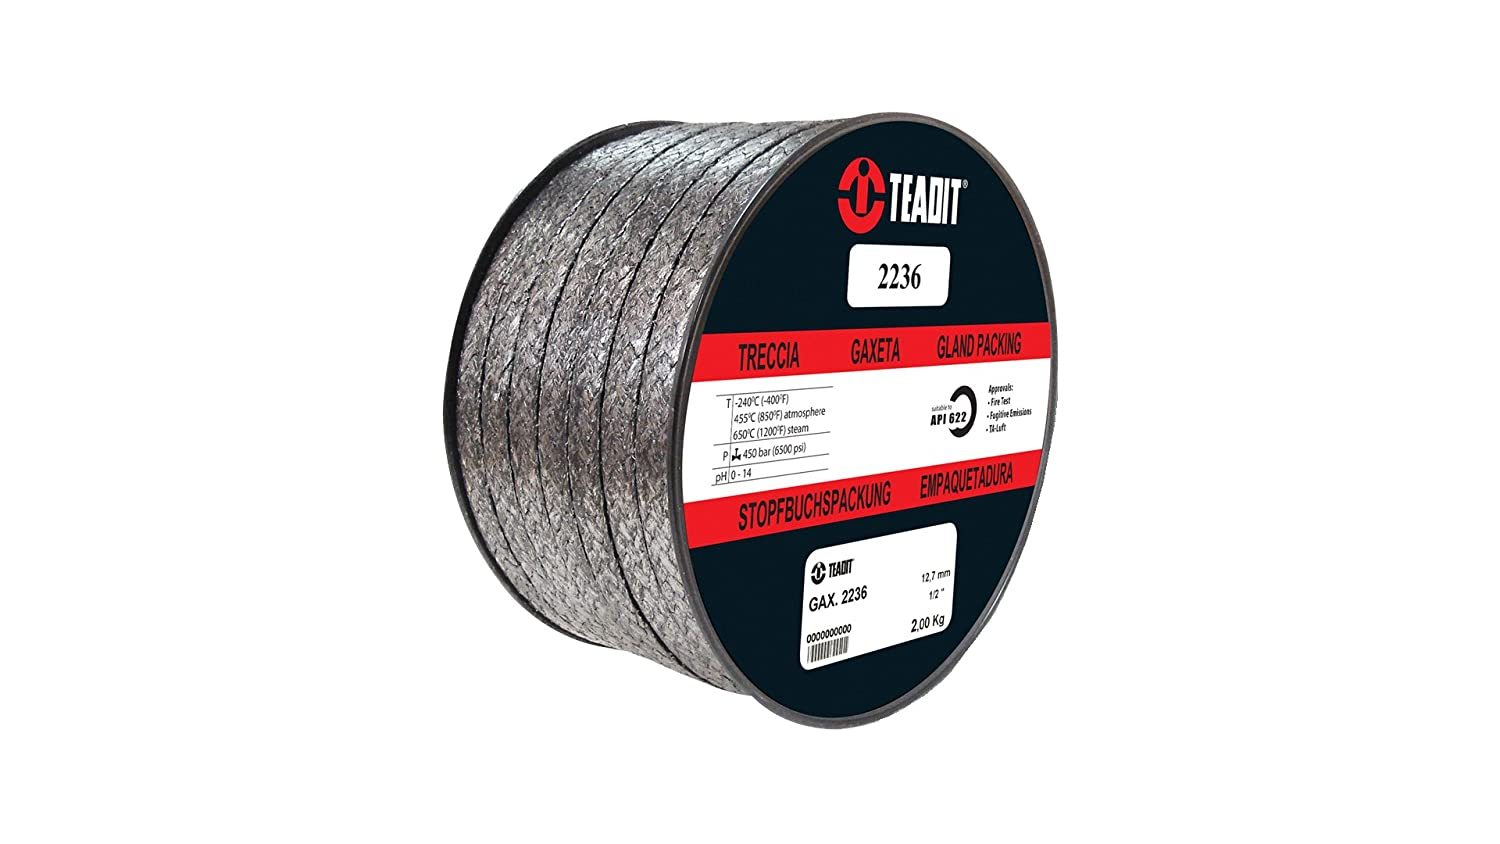 Spool Sterling Seal and Supply STCC Spool 1//2 CS x 5 lb 2236.500X5 Teadit Style 2236 Graphite Foil with Inconel Wire Jacket 1//2 CS x 5 lb